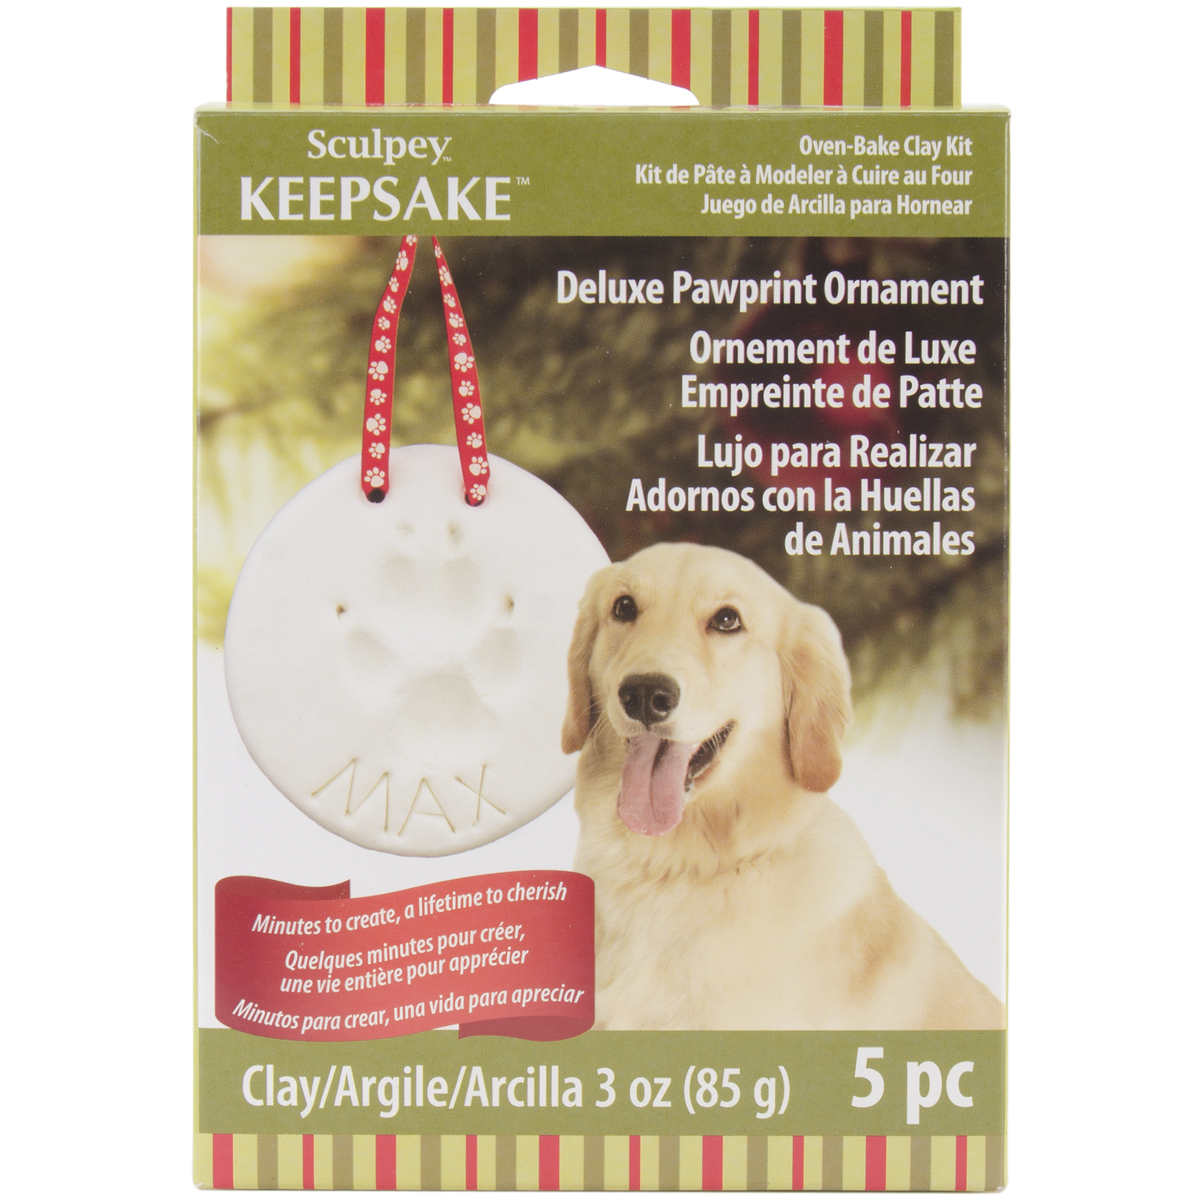 Sculpey Keepsake Pawprint Ornament Kit